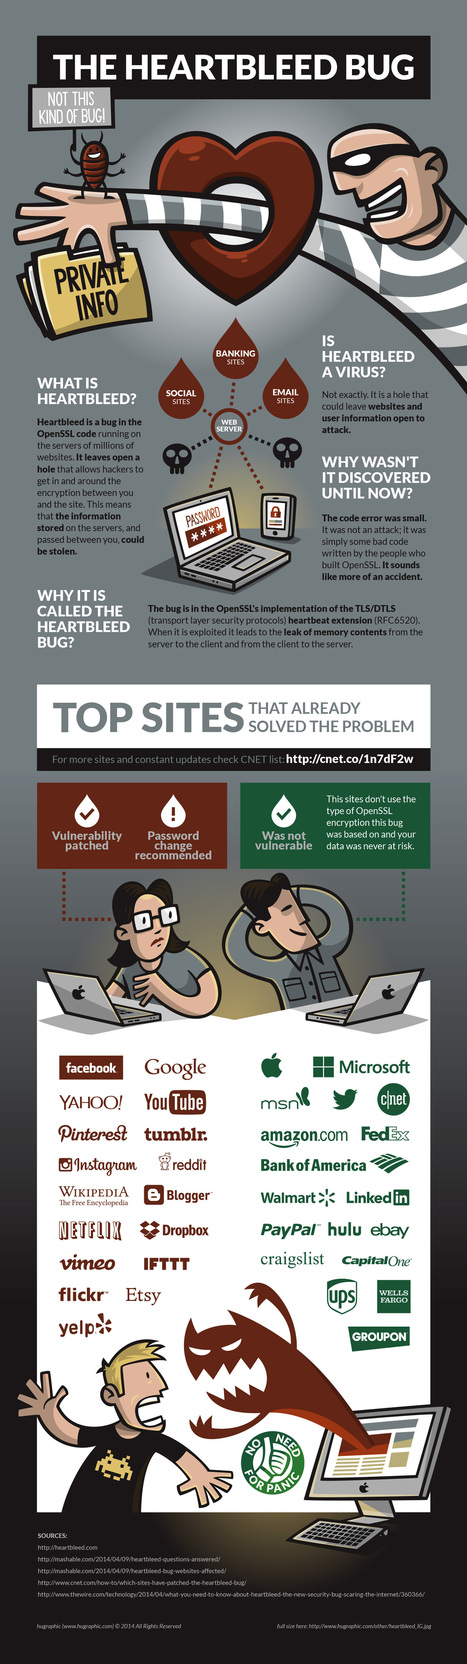 Qué es Heartbleed #infografia #infographic #internet | Aprendiendoaenseñar | Scoop.it